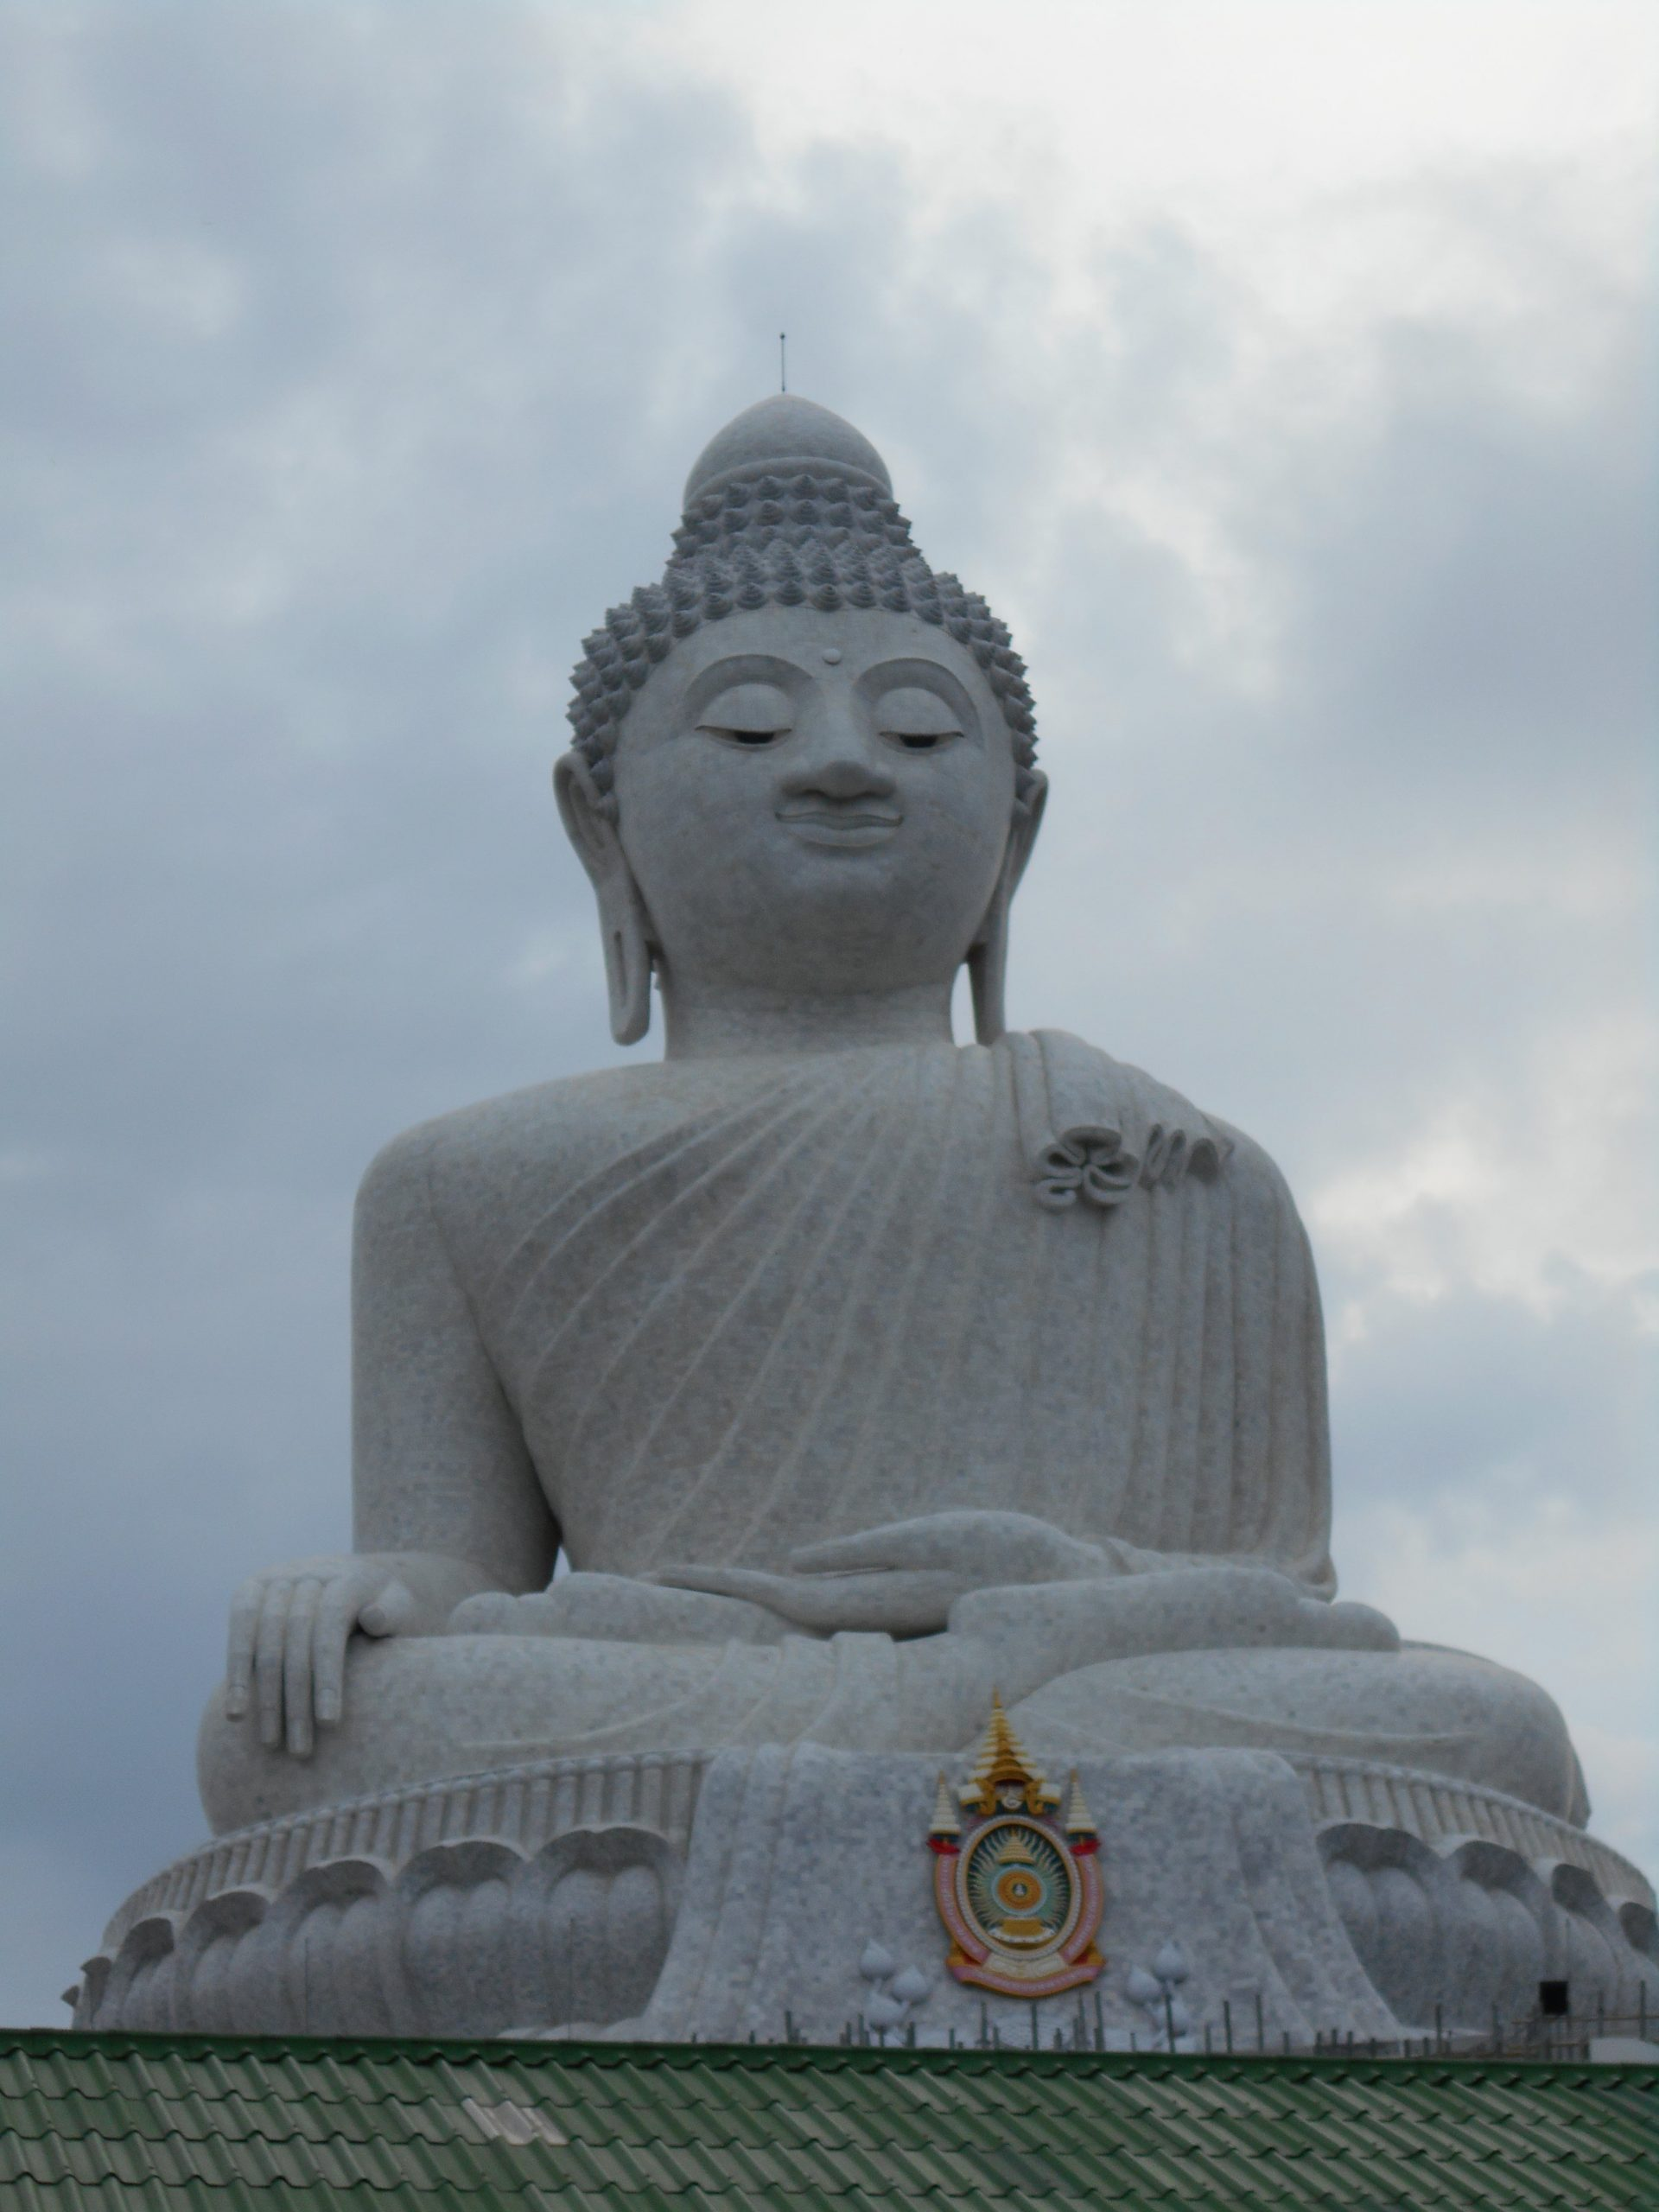 Big buddha photo